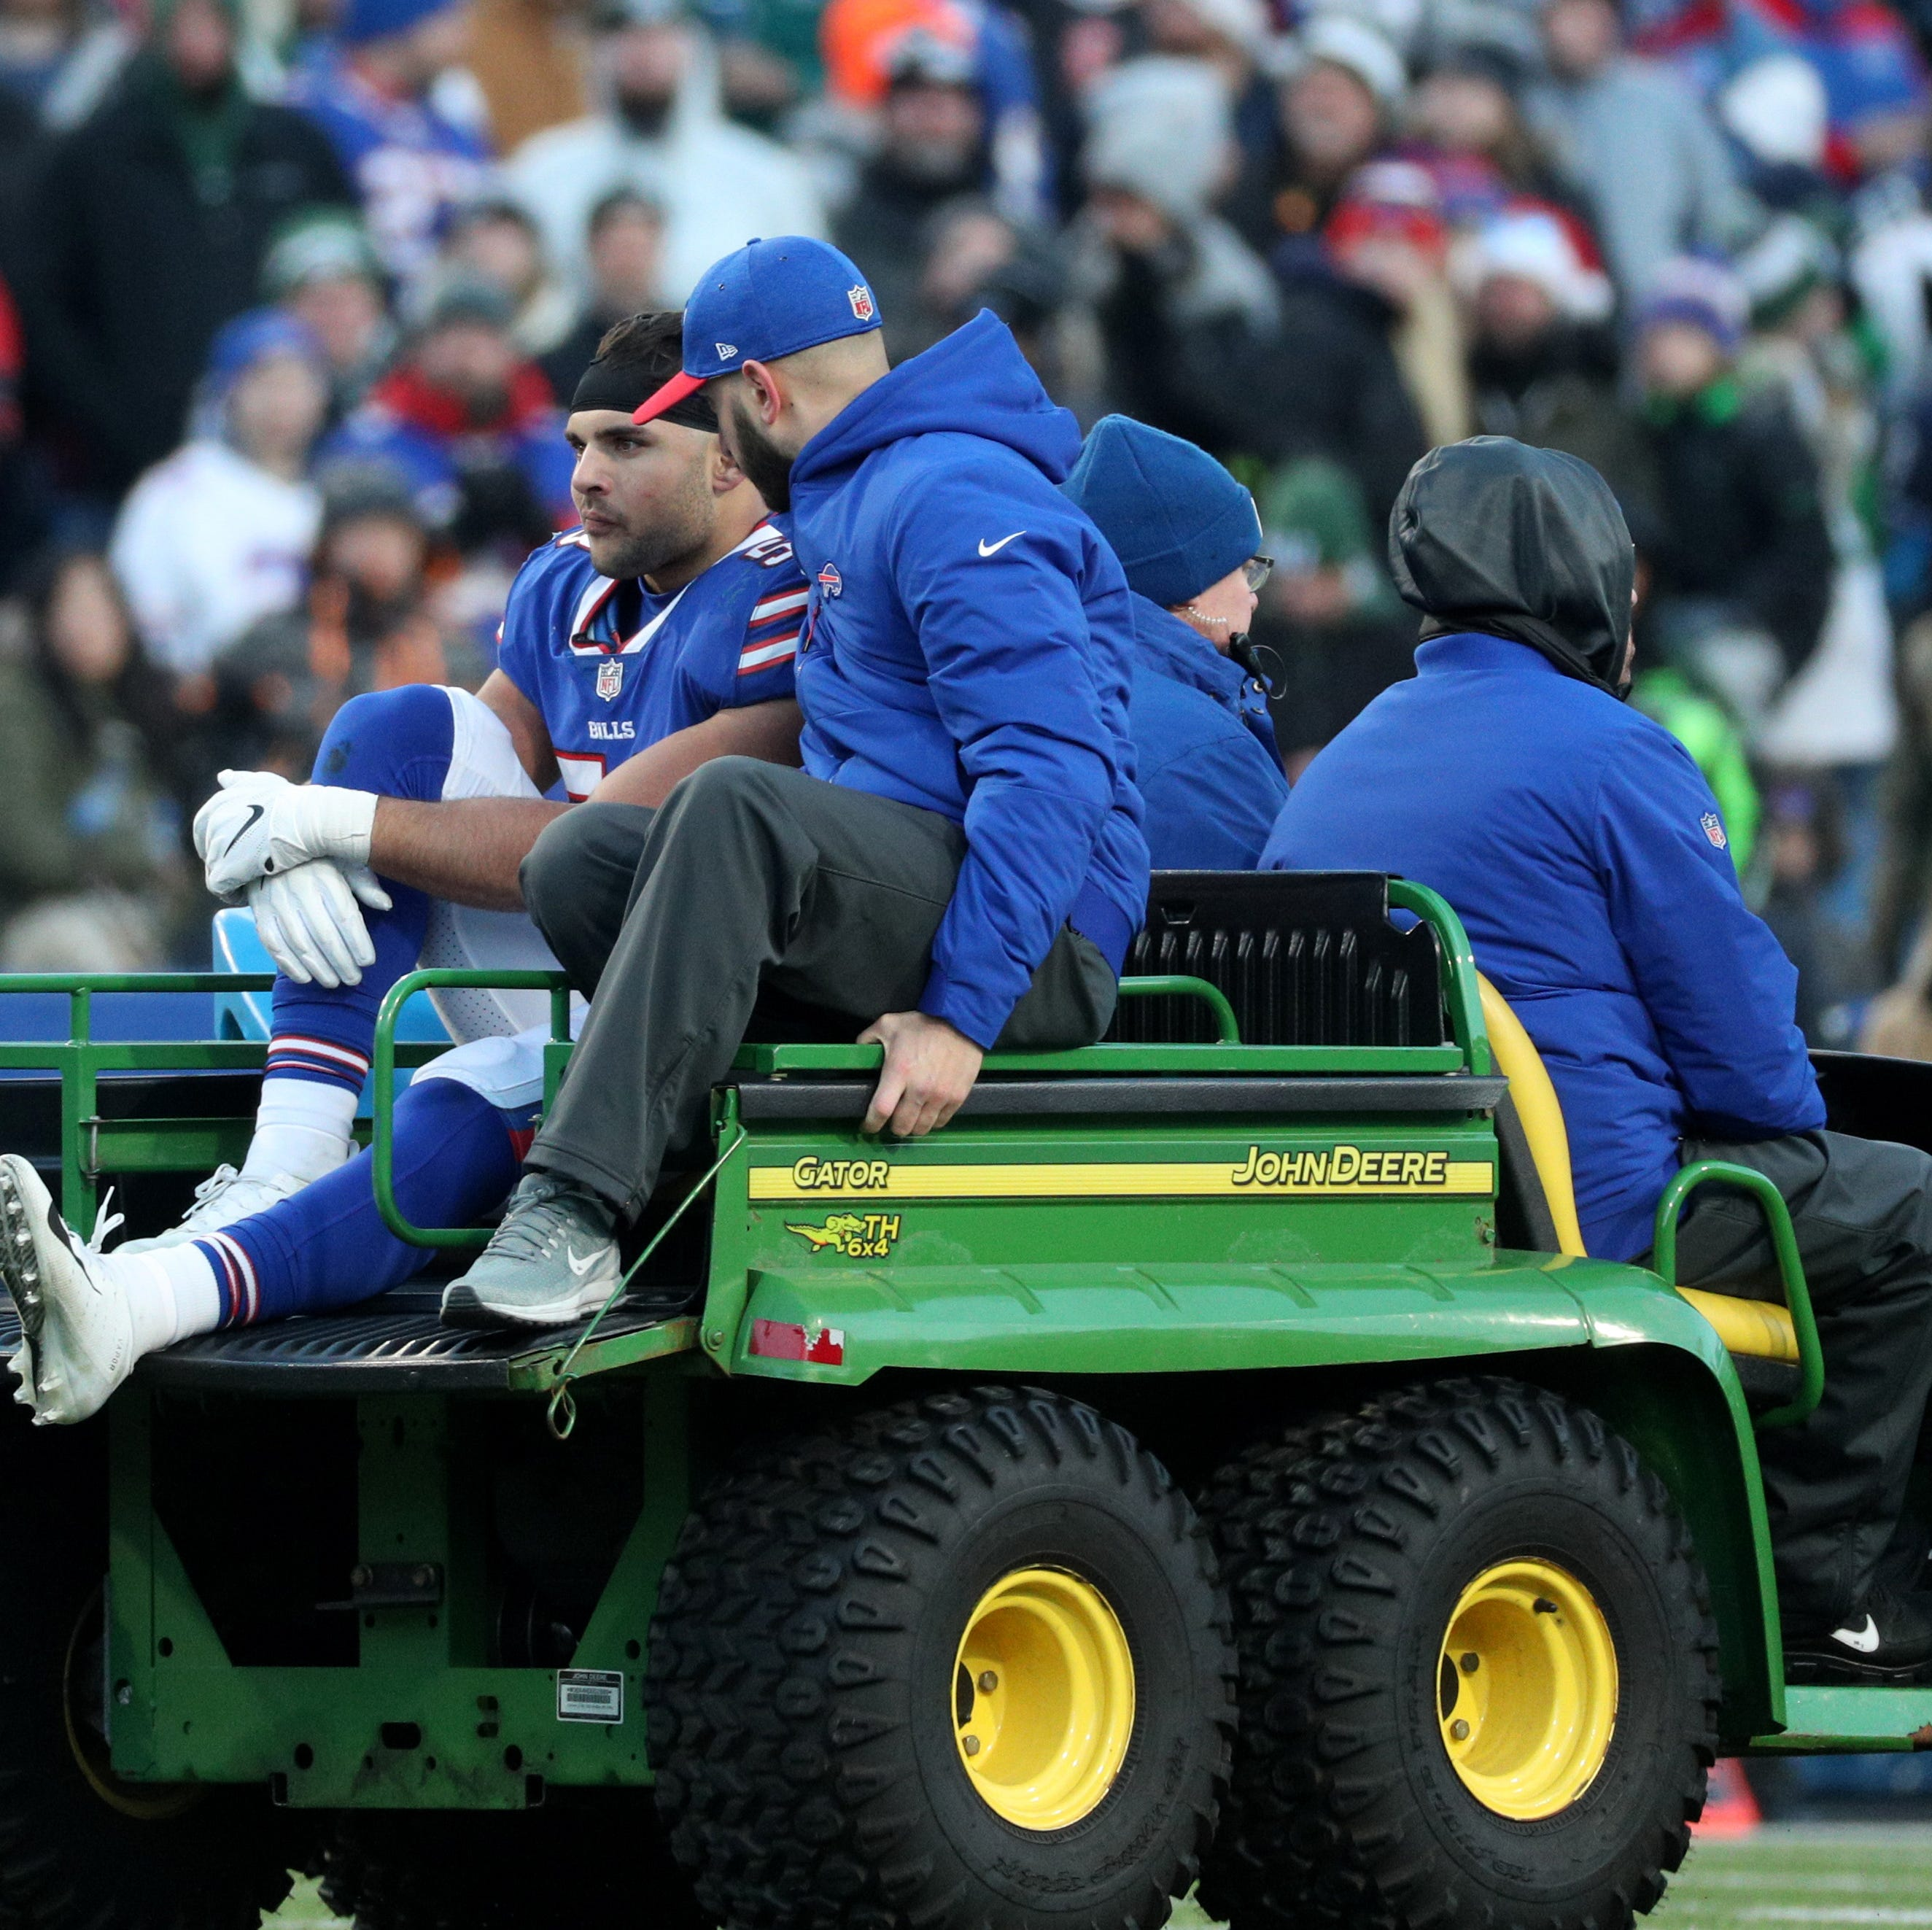 Buffalo Bills linebacker Matt Milano suffered broken leg, is out for season